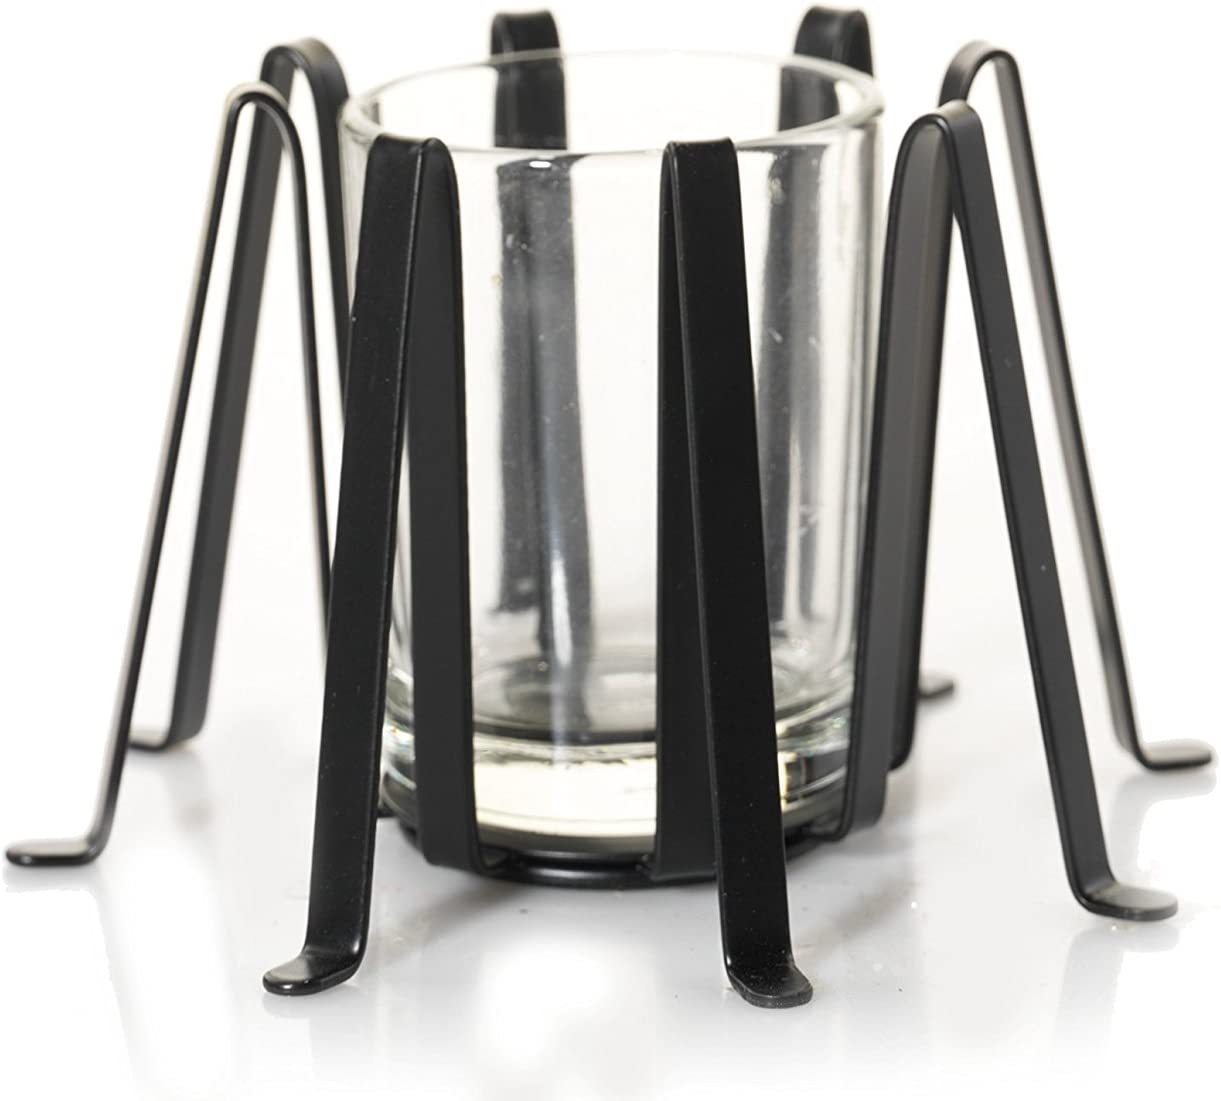 Yankee Candle Spider Legs Votive Candle Holder